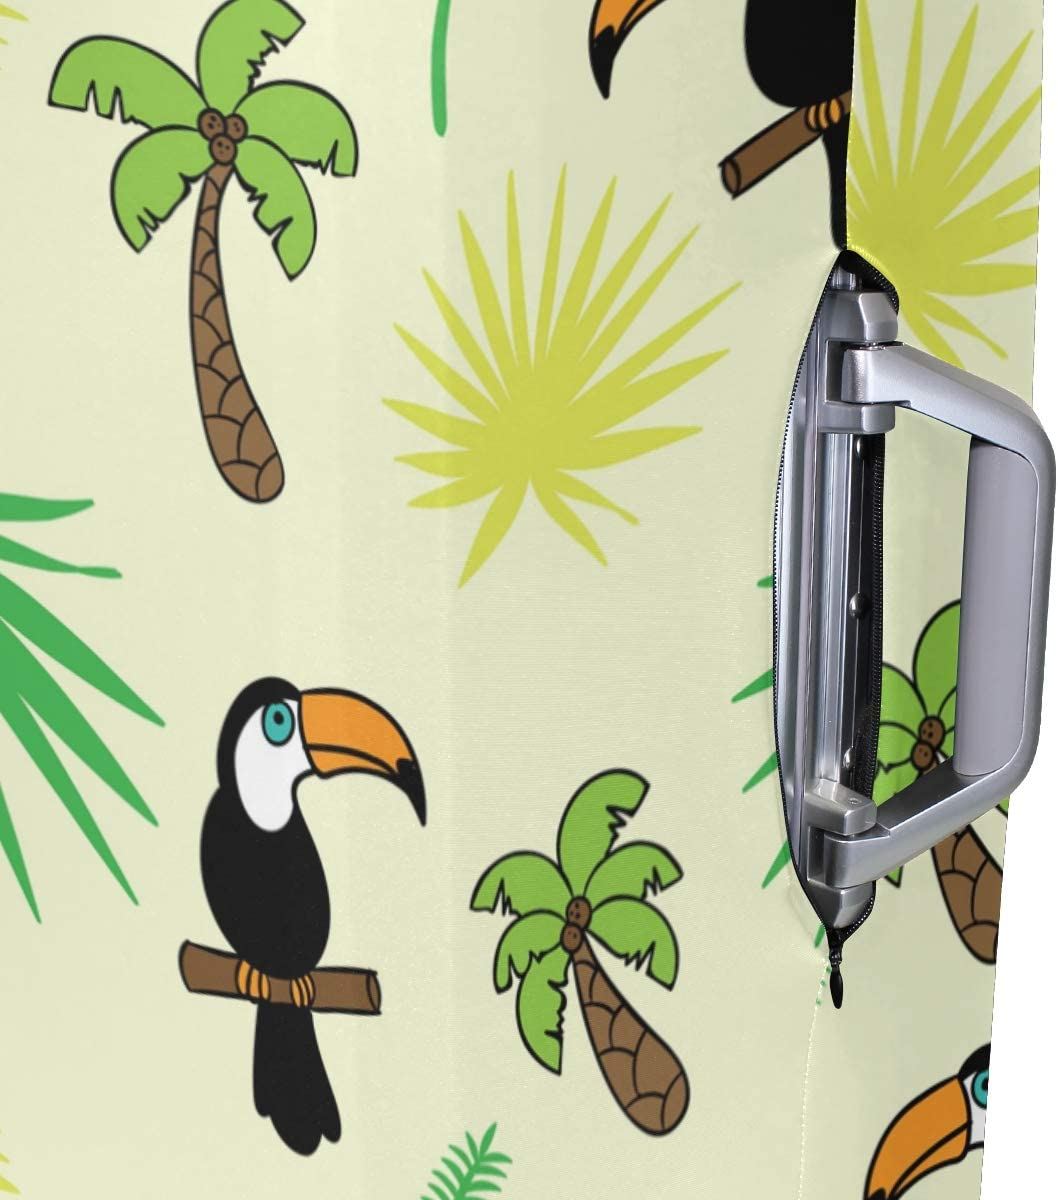 FOLPPLY Tropical Toucan Birds Palm Design Luggage Cover Baggage Suitcase Travel Protector Fit for 18-32 Inch